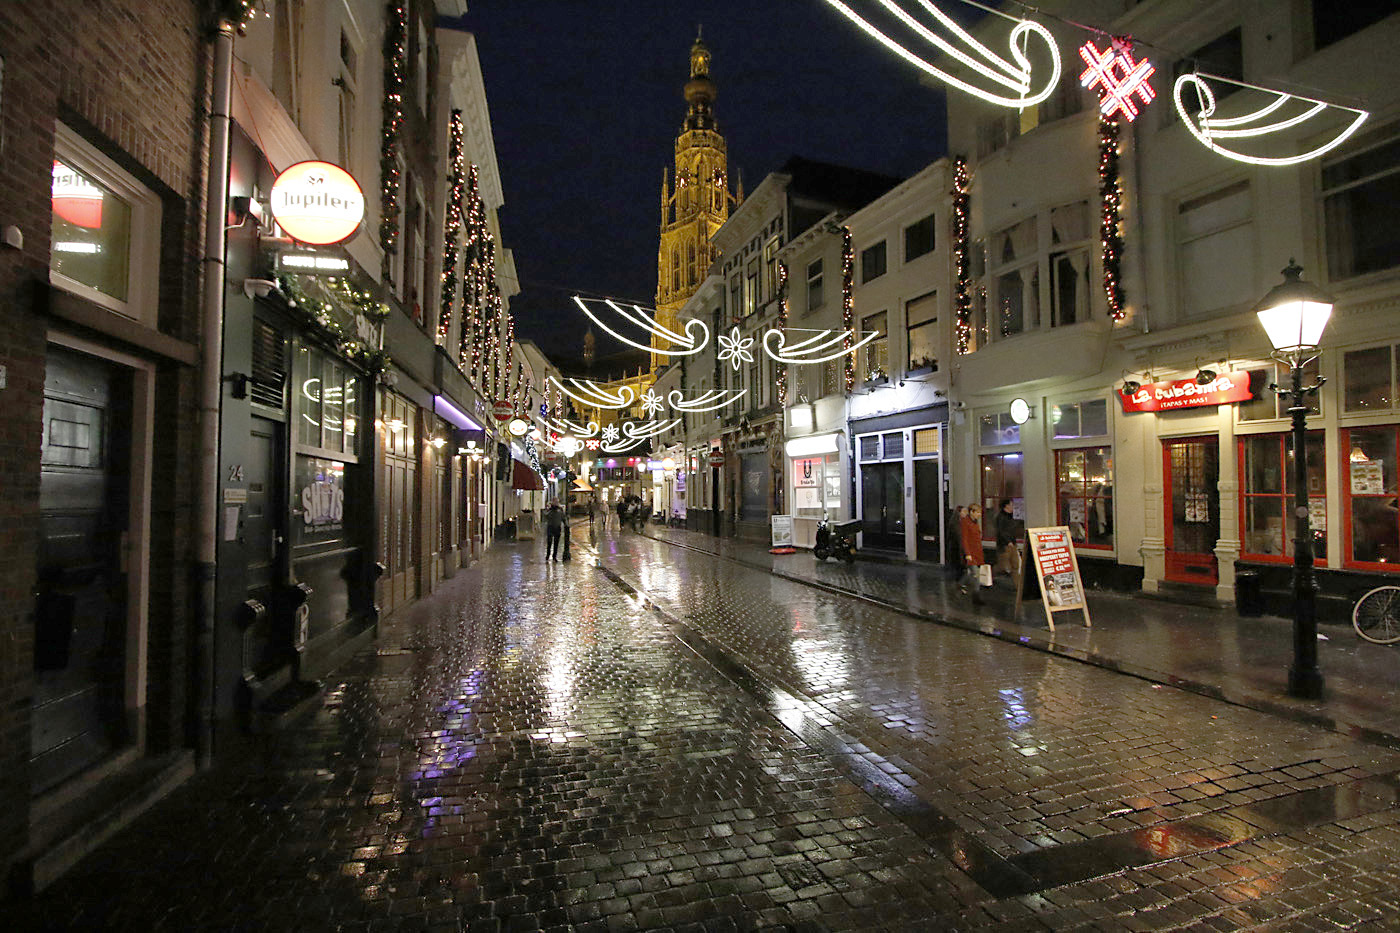 Breda in de nacht, januari 2016.